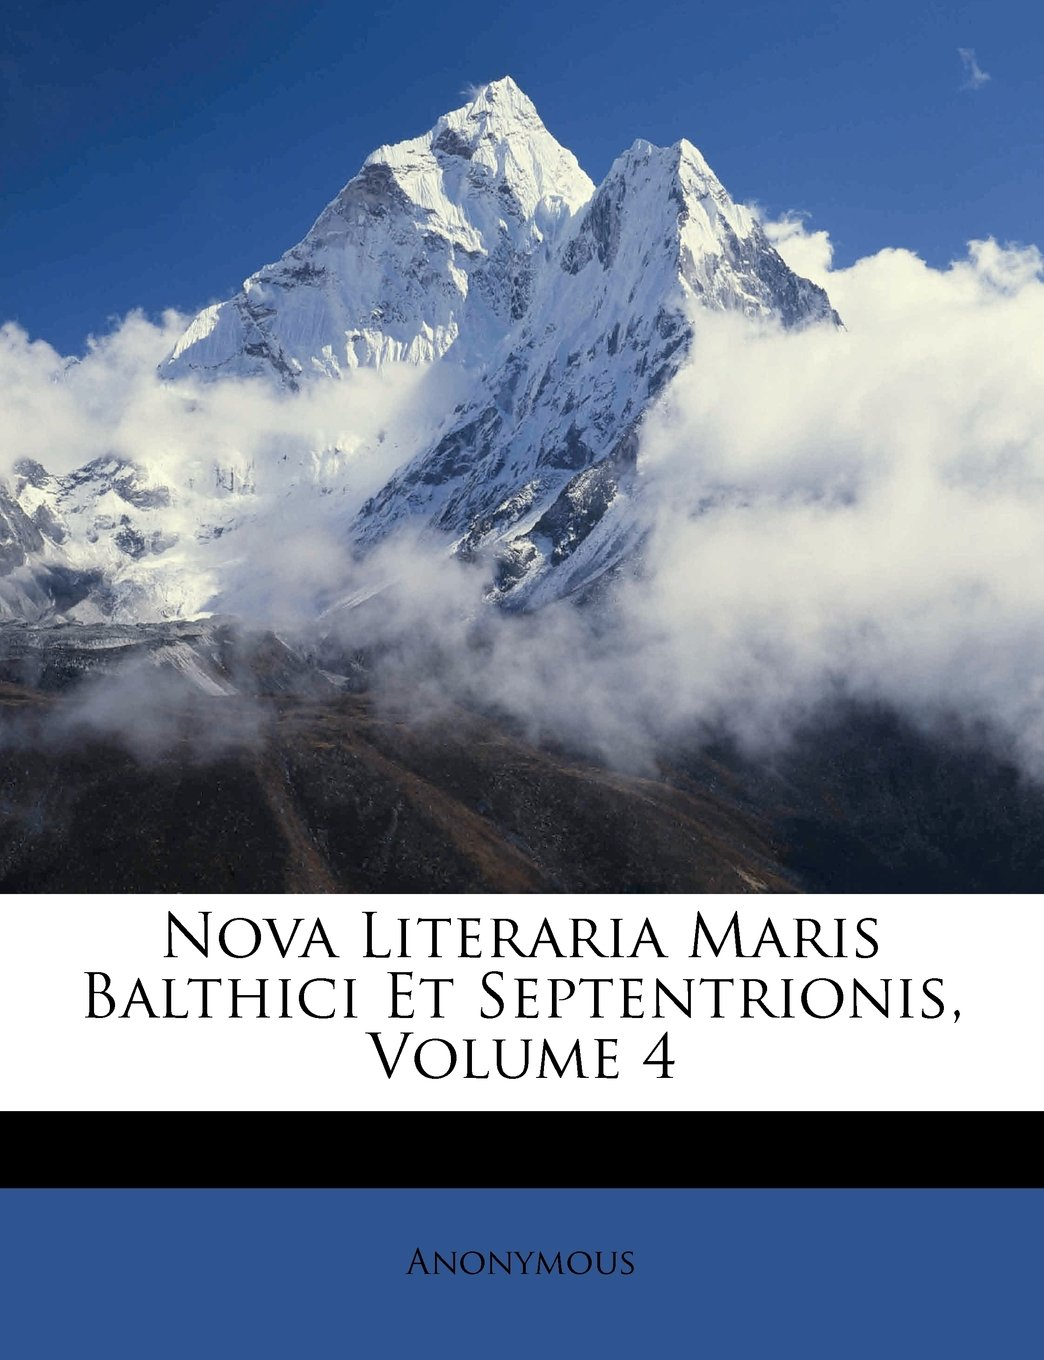 Download Nova Literaria Maris Balthici Et Septentrionis, Volume 4 PDF ePub fb2 ebook